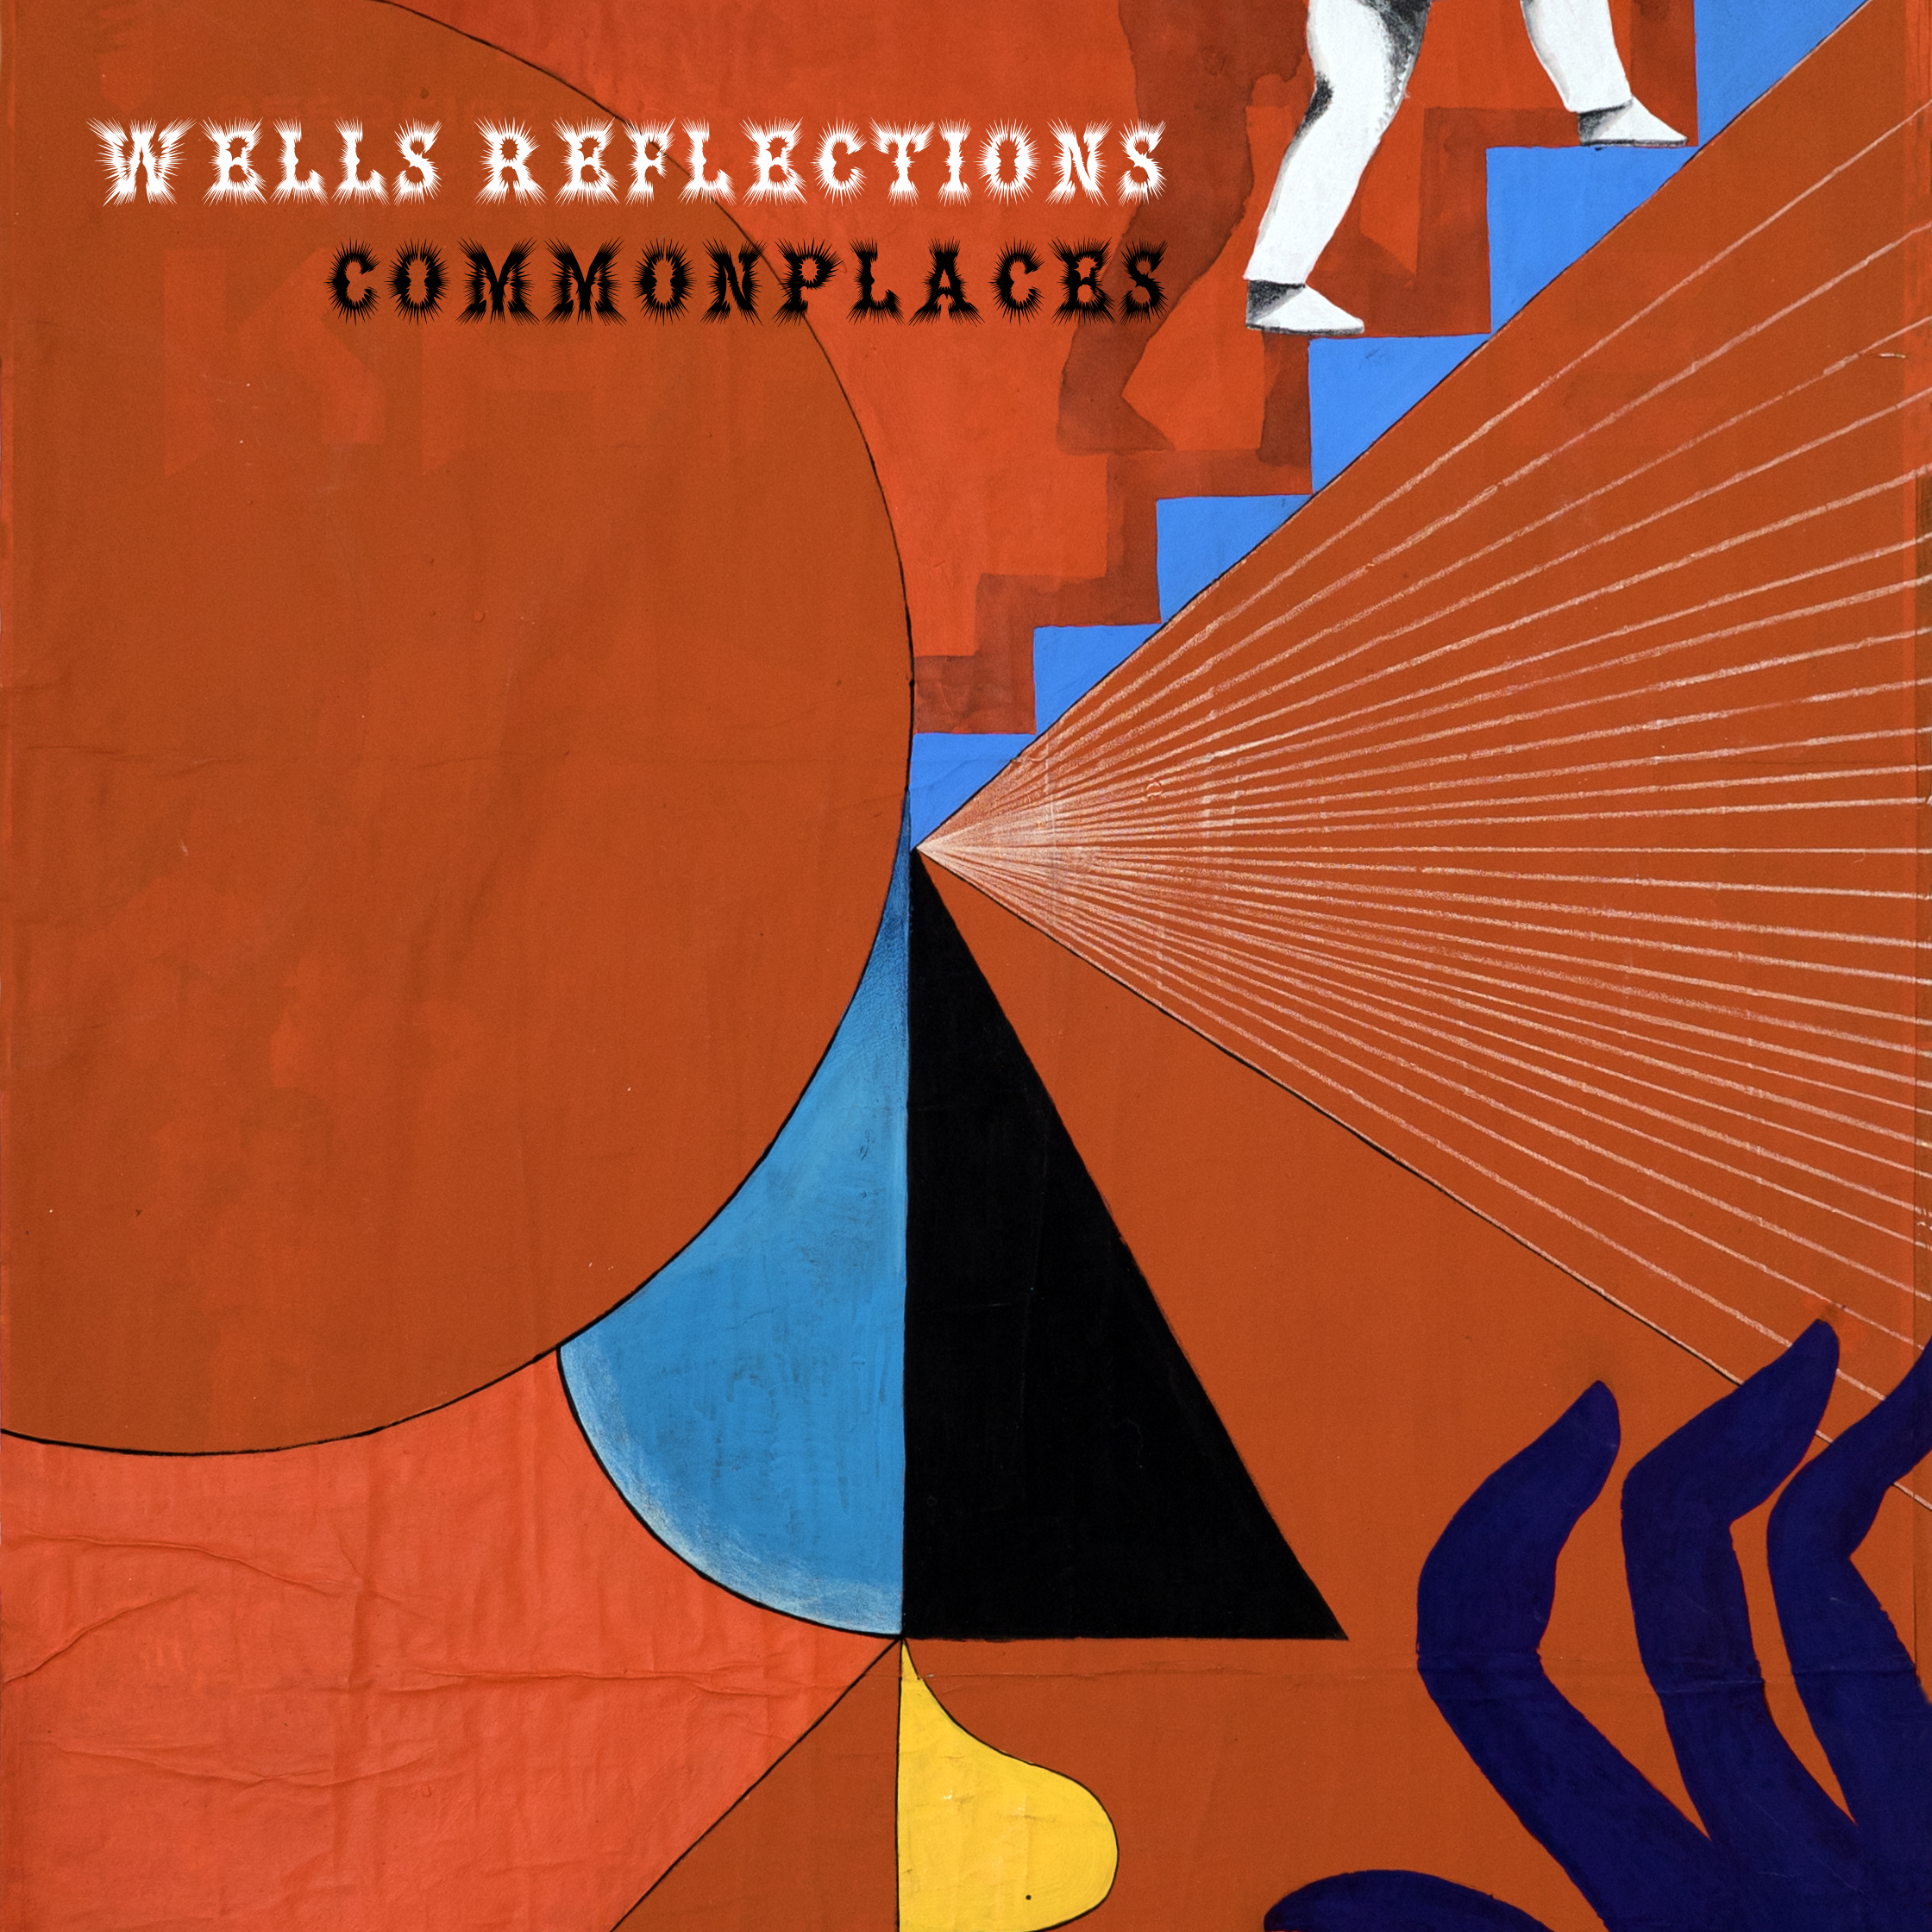 Wells Reflections - originated from the desire to create a band interested in exploring the field of improvised music within a determined framework. The quintet, comprising percussion (Ana Gomez), tuba (Jo Gibson), vibraphone (Ian Da Preda), violin (Inês Lapa) and voice (Maddalena Ghezzi), works on original and curious compositions.Album cover by Giacomo Run